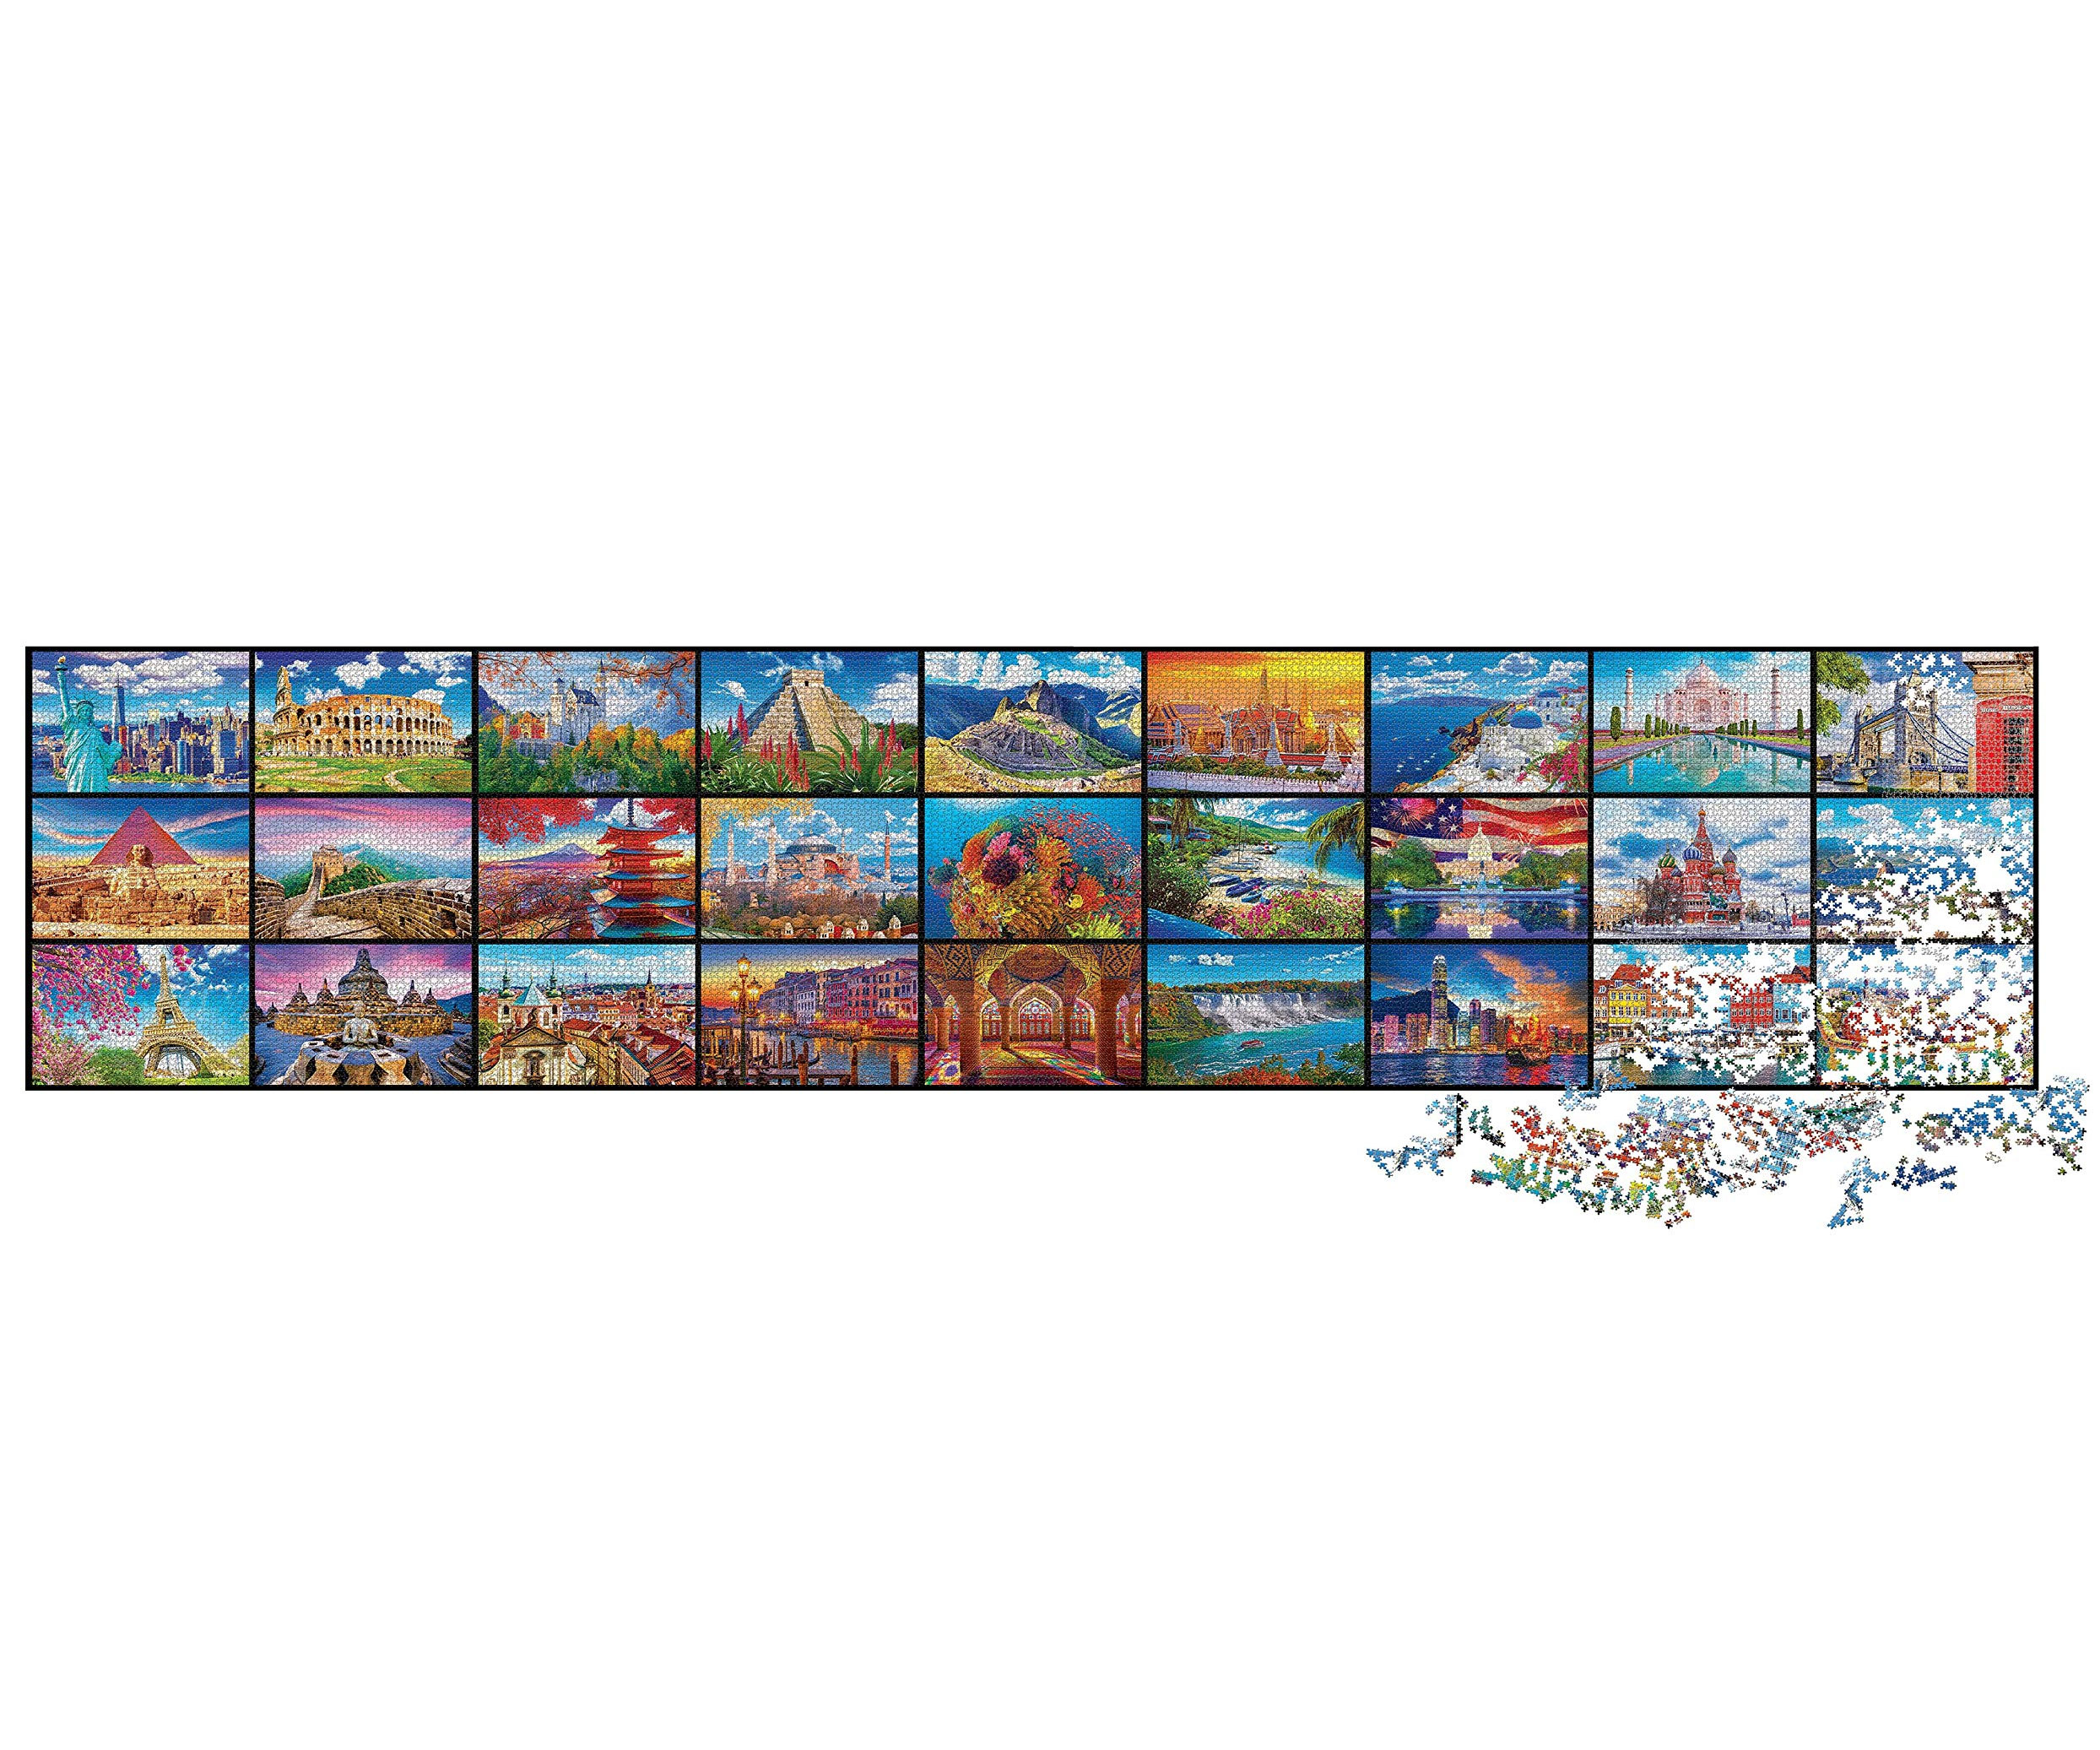 The World's Largest Jigsaw Puzzle